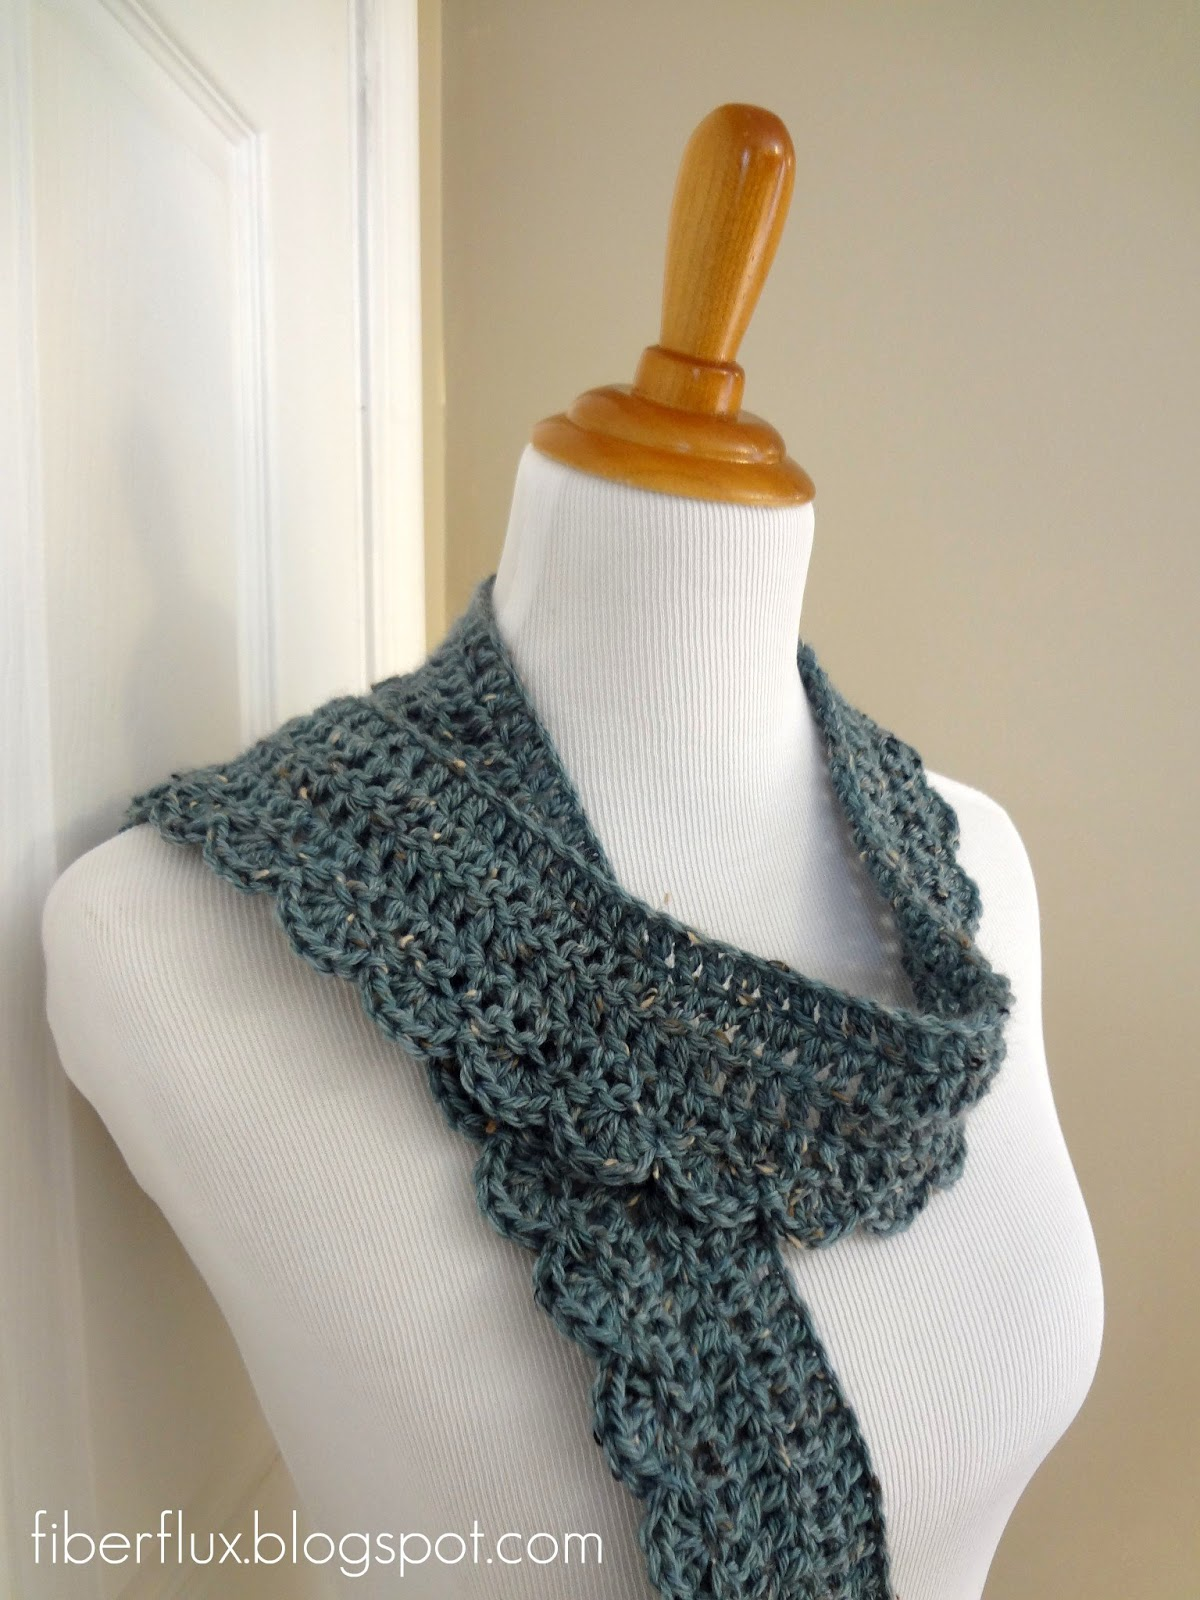 Crochet Scarf Patterns Worsted Weight : Fiber Flux: Free Crochet Pattern...Ocean Air Scarf